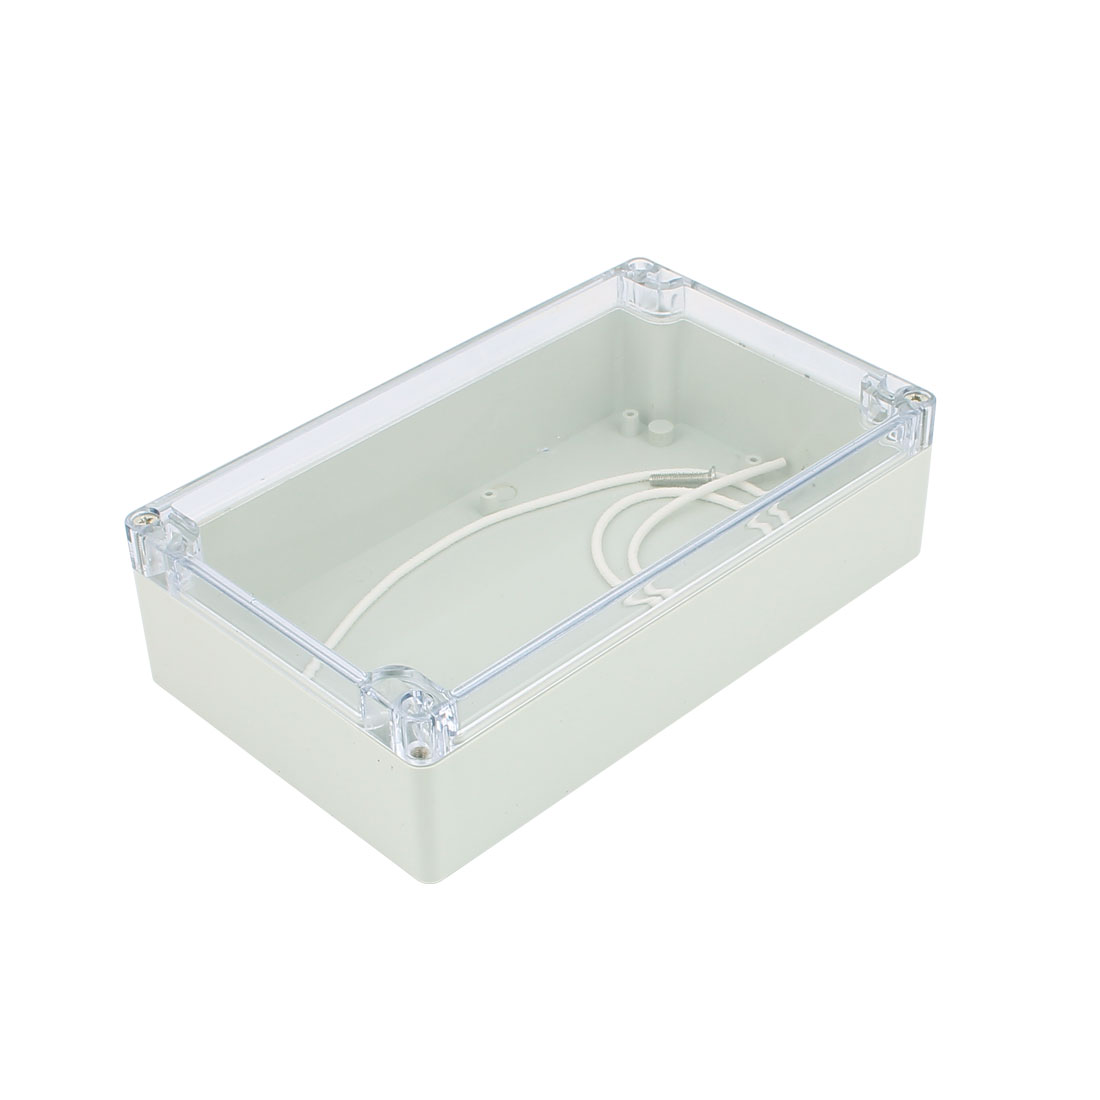 200mm x 120mm x 56mm Clear Cover Dustproof IP65 Enclosure Case DIY Junction Box